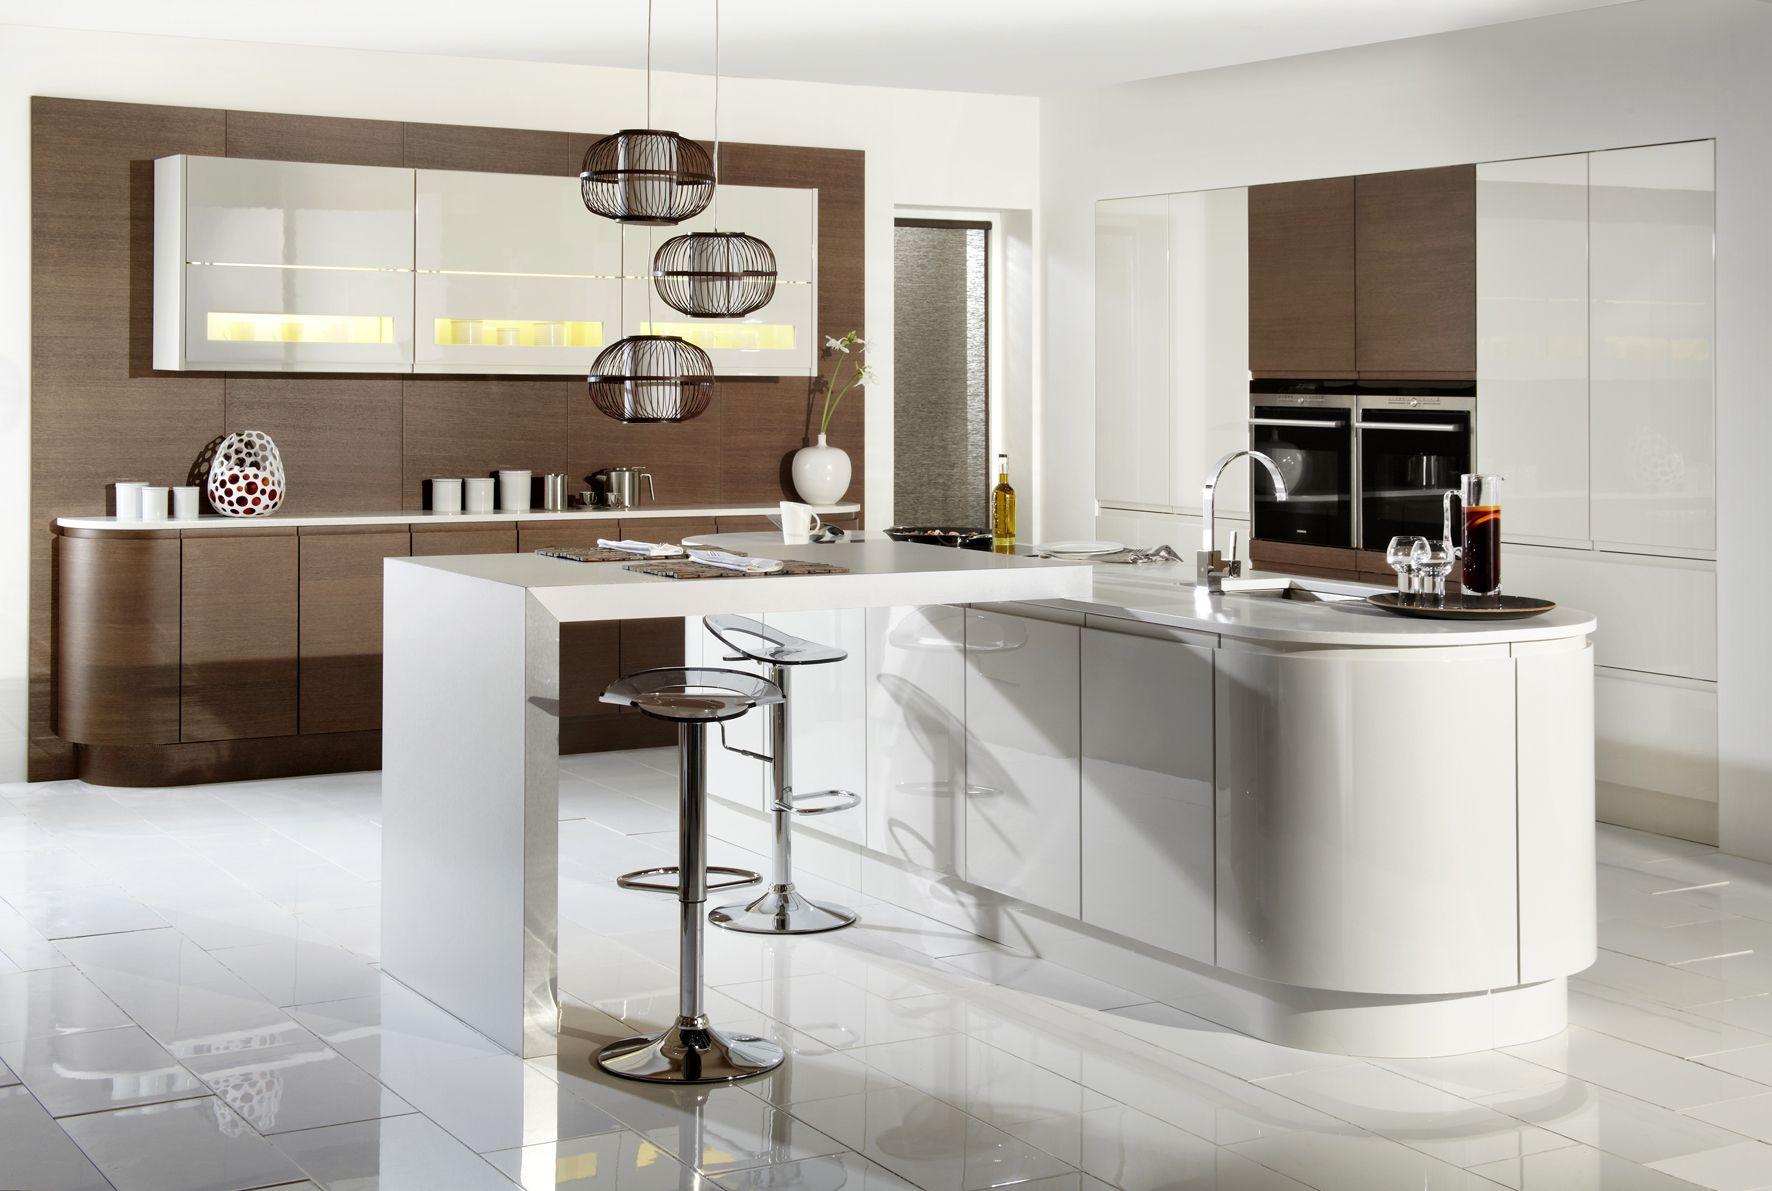 Fitted Kitchen This Fitted Kitchen Is A Combination Of Gloss Porcelain With Dark